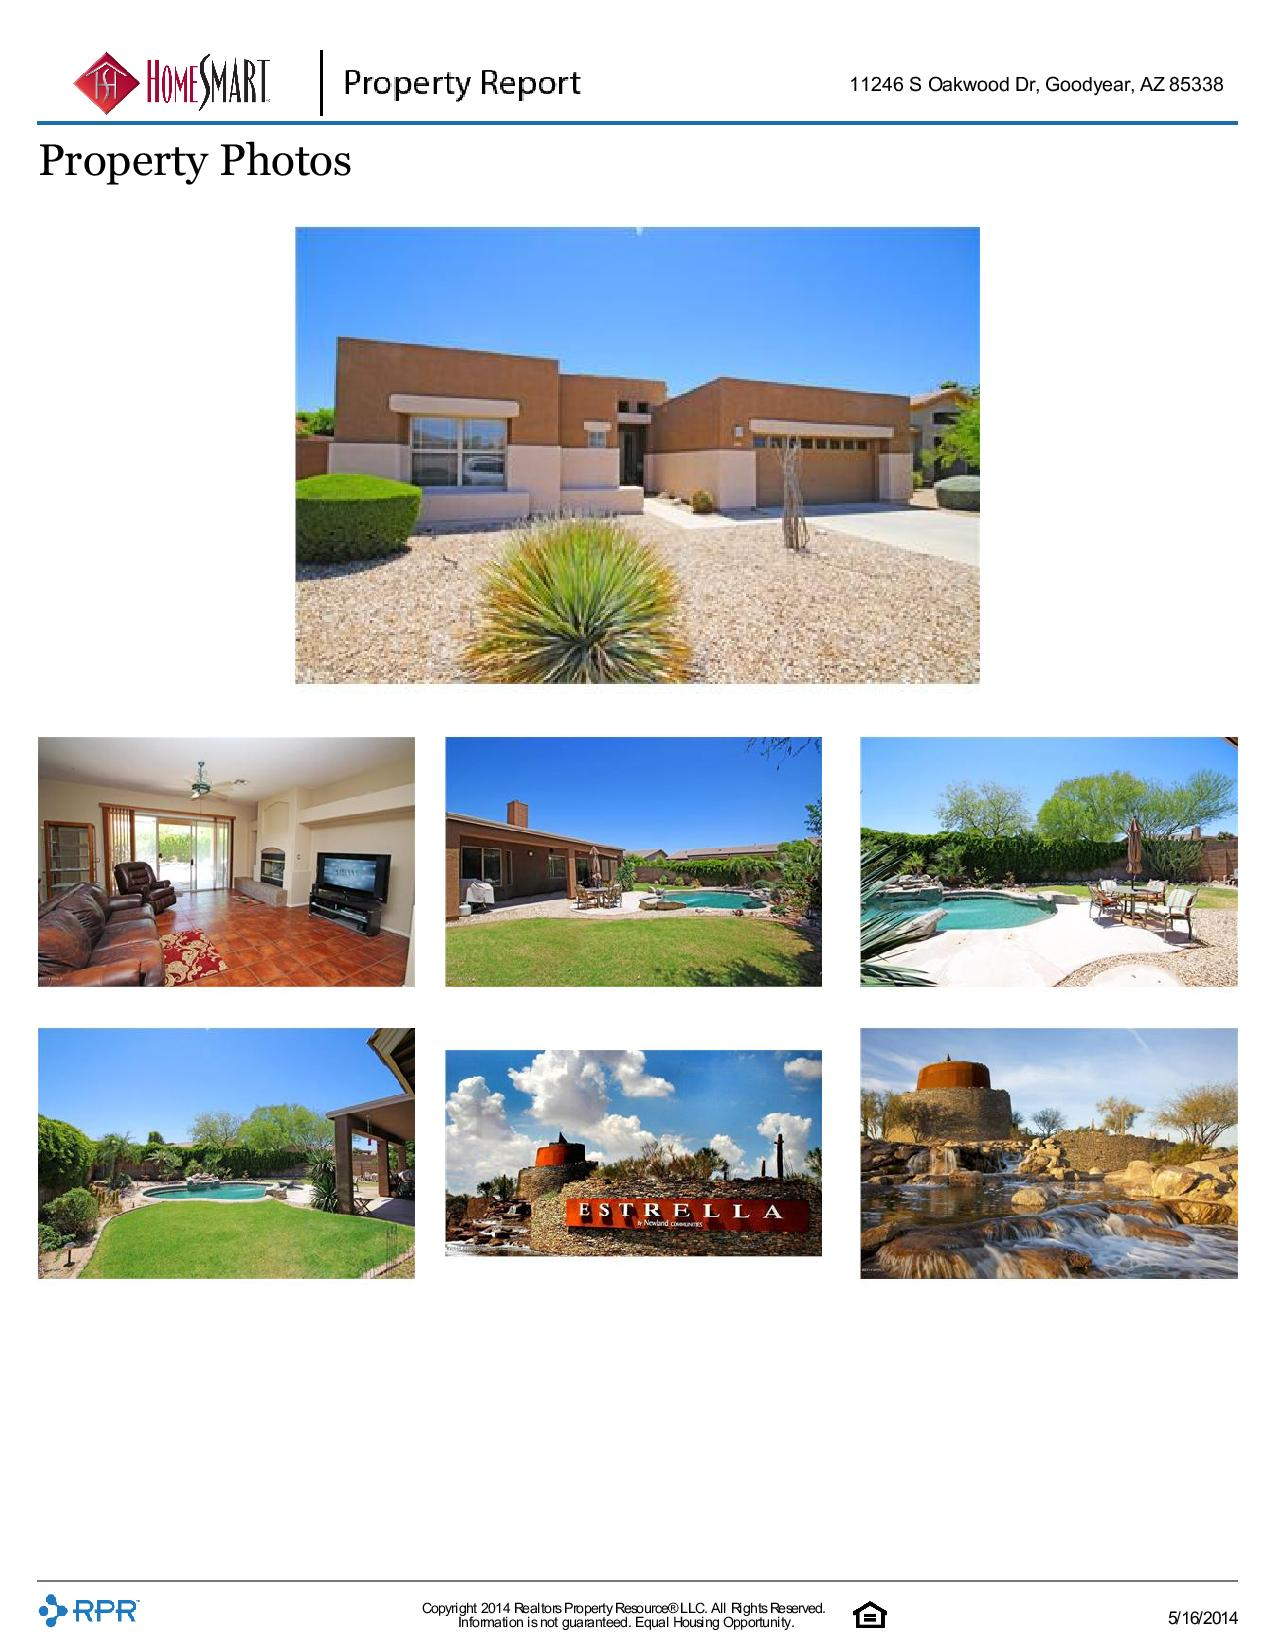 11246-S-Oakwood-Dr-Goodyear-AZ-85338-page-005